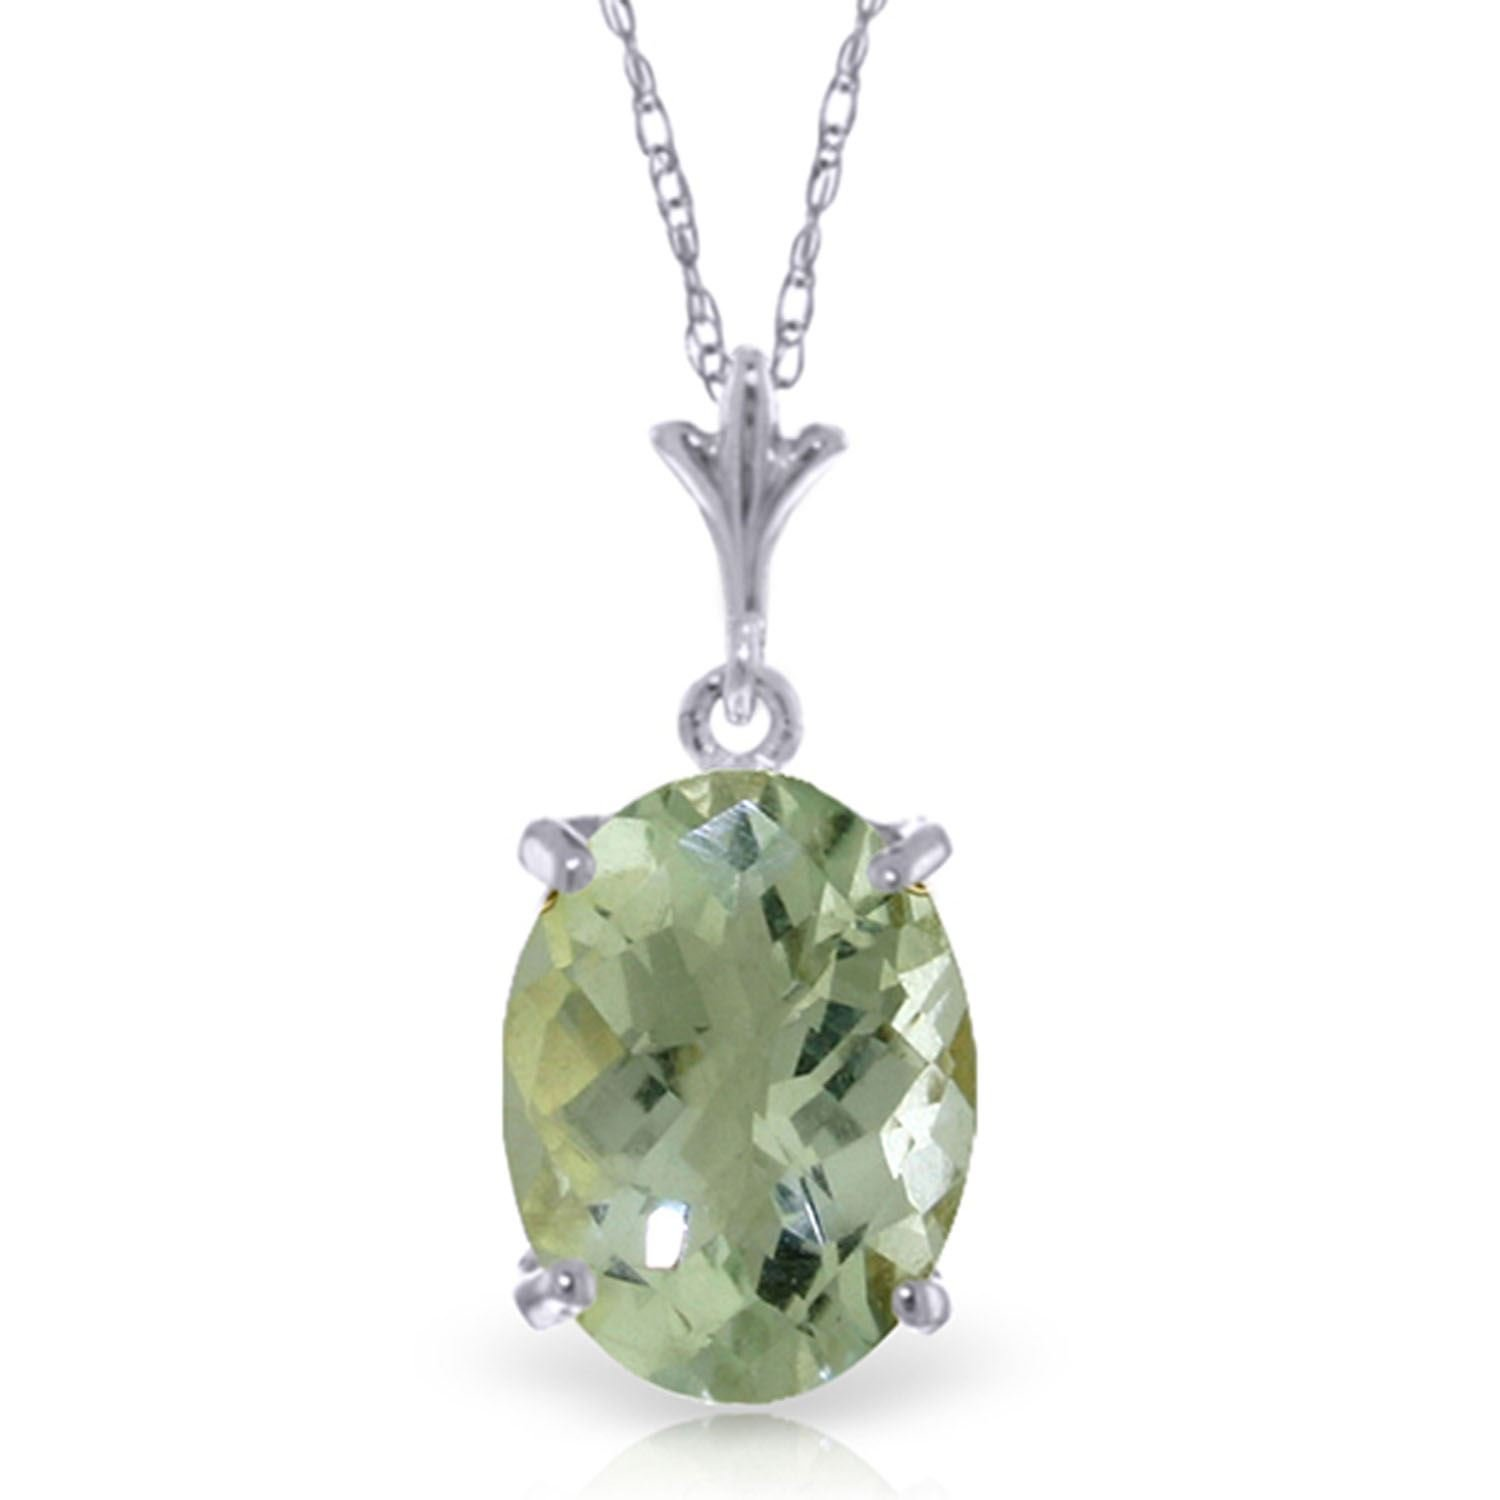 ALARRI 3.2 CTW 14K Solid White Gold Starting Now Green Amethyst Necklace with 20 Inch Chain Length